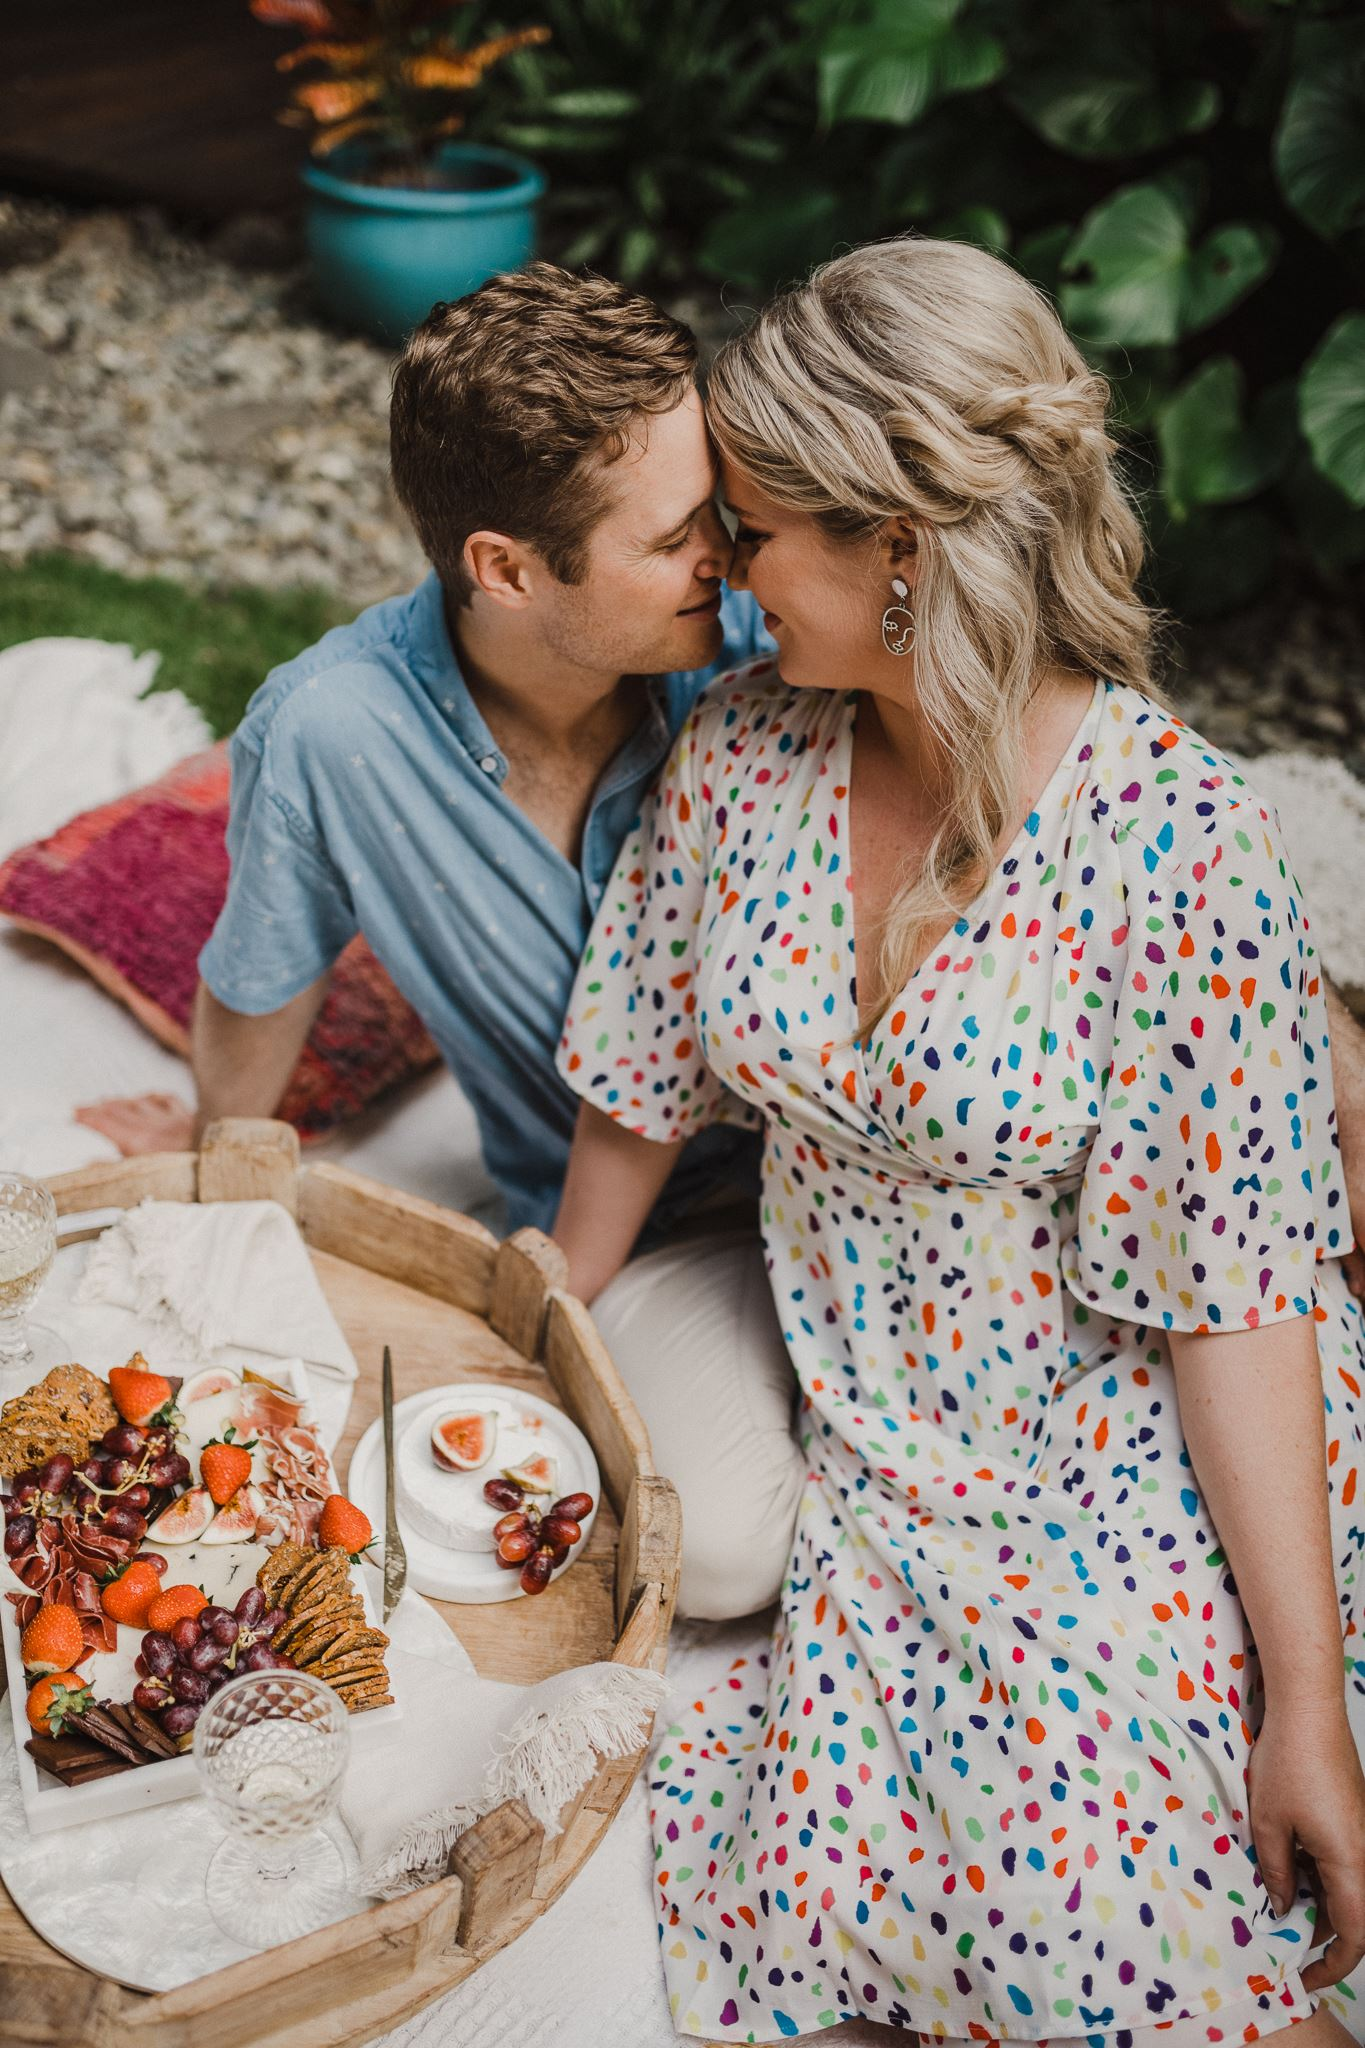 The Collection Co - Cairns - Catering - Styling - Picnic - Grazing- Engagament Photoshoot.jpg